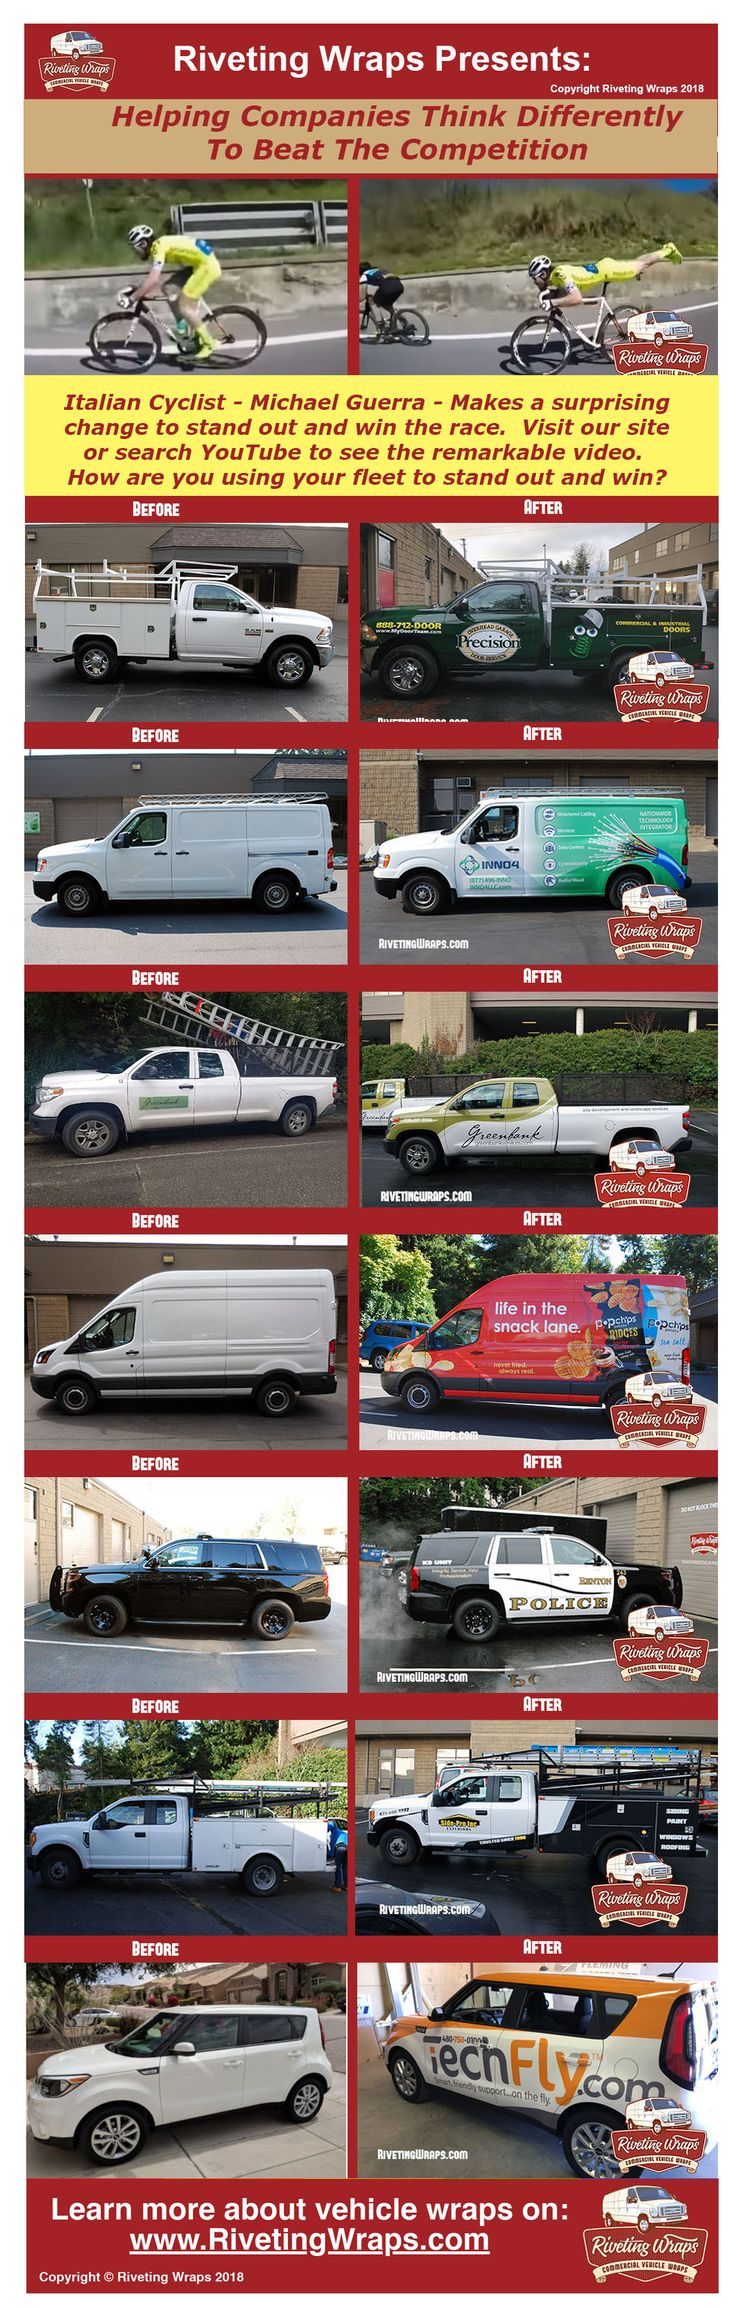 32 best Mercedes Sprinter Vehicle Wraps and Graphics images on ...